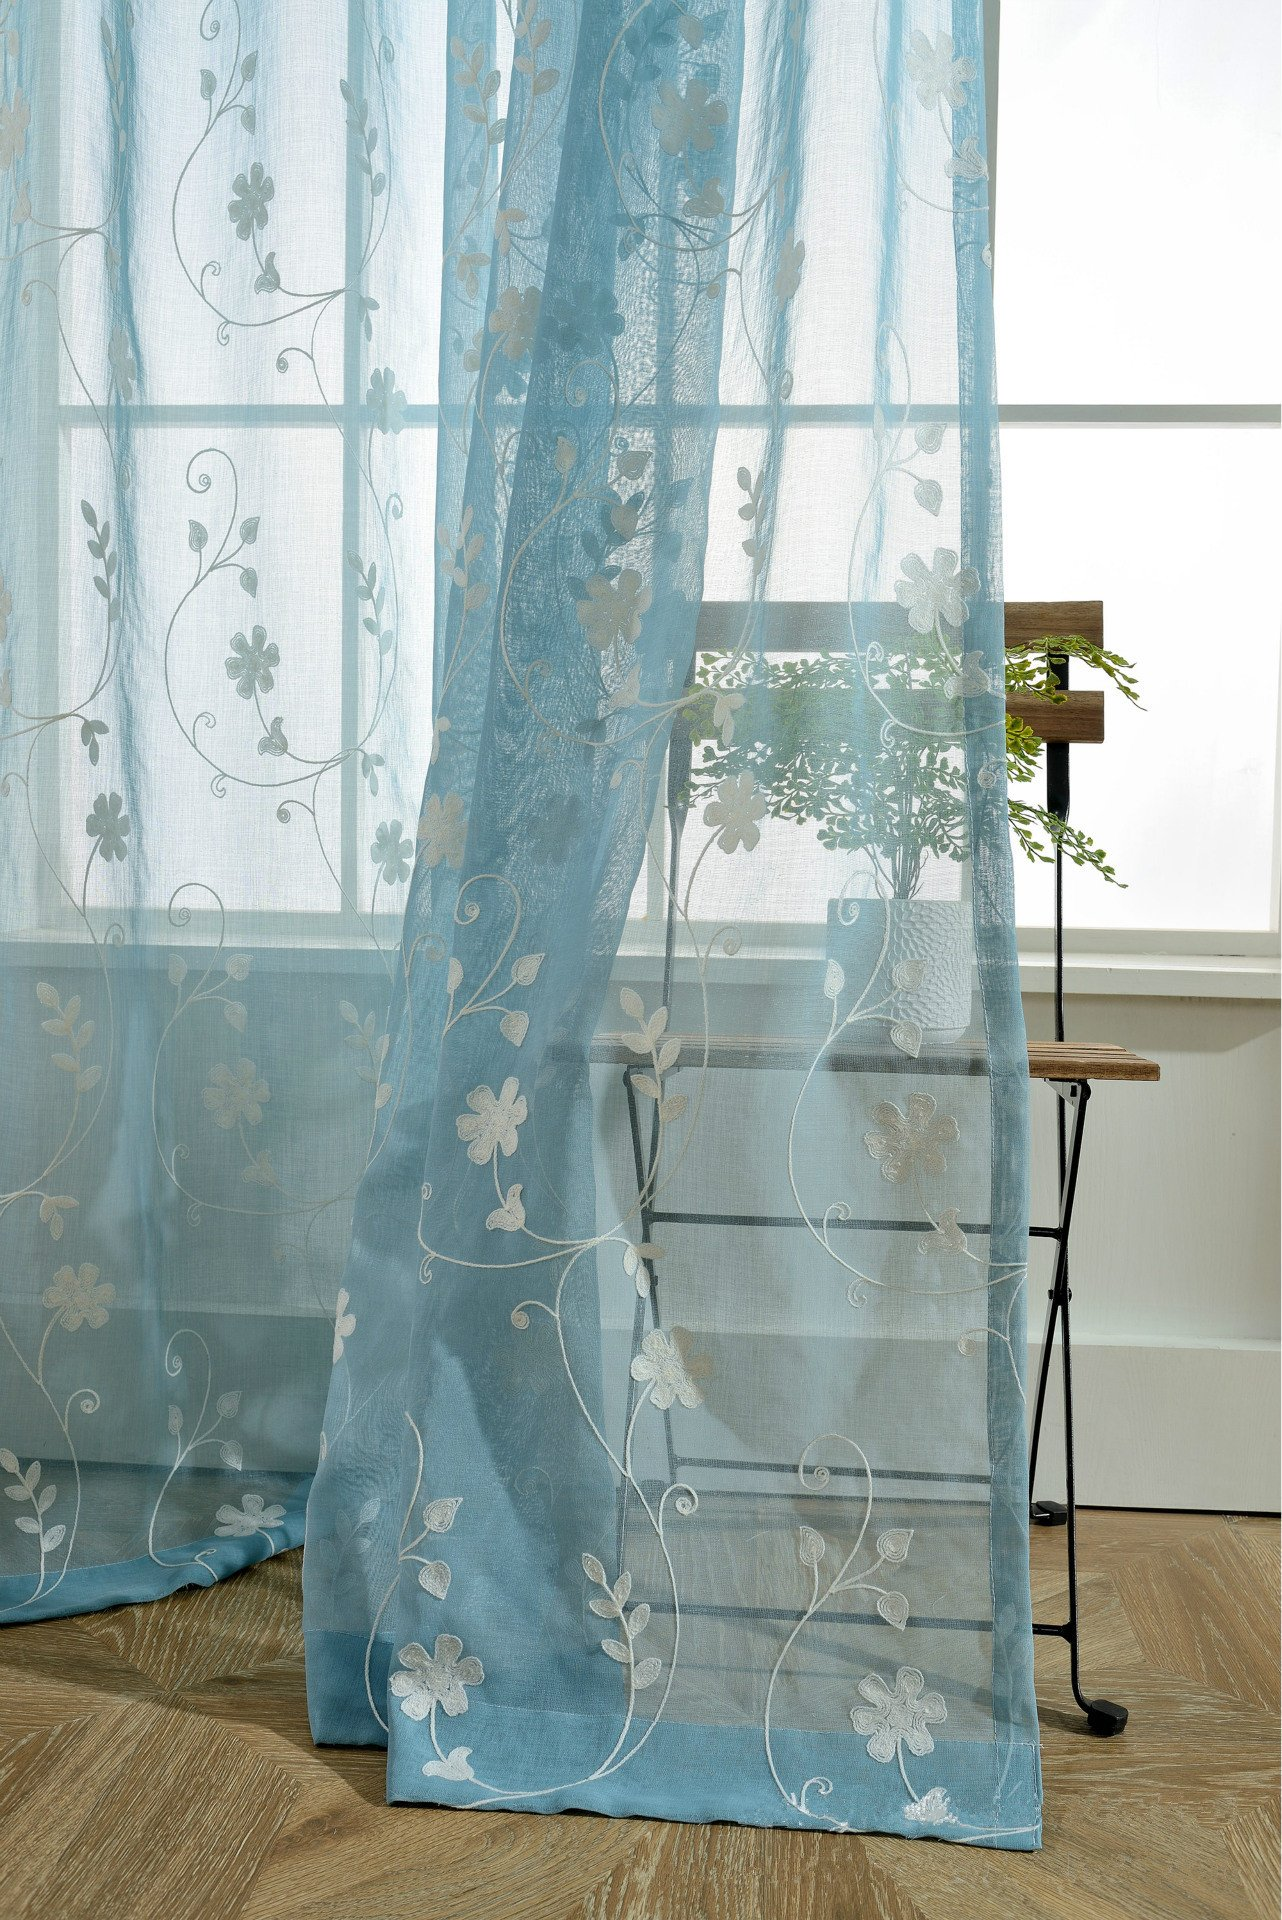 AliFish Home Decor Sheer Curtains Elegance Voile Curtain Delicate Sheer Curtain Floral Leaves Embroidered Curtains Faux Linen Curtains Rod Pocket Curtains for Girls Room W39 x L84 inch